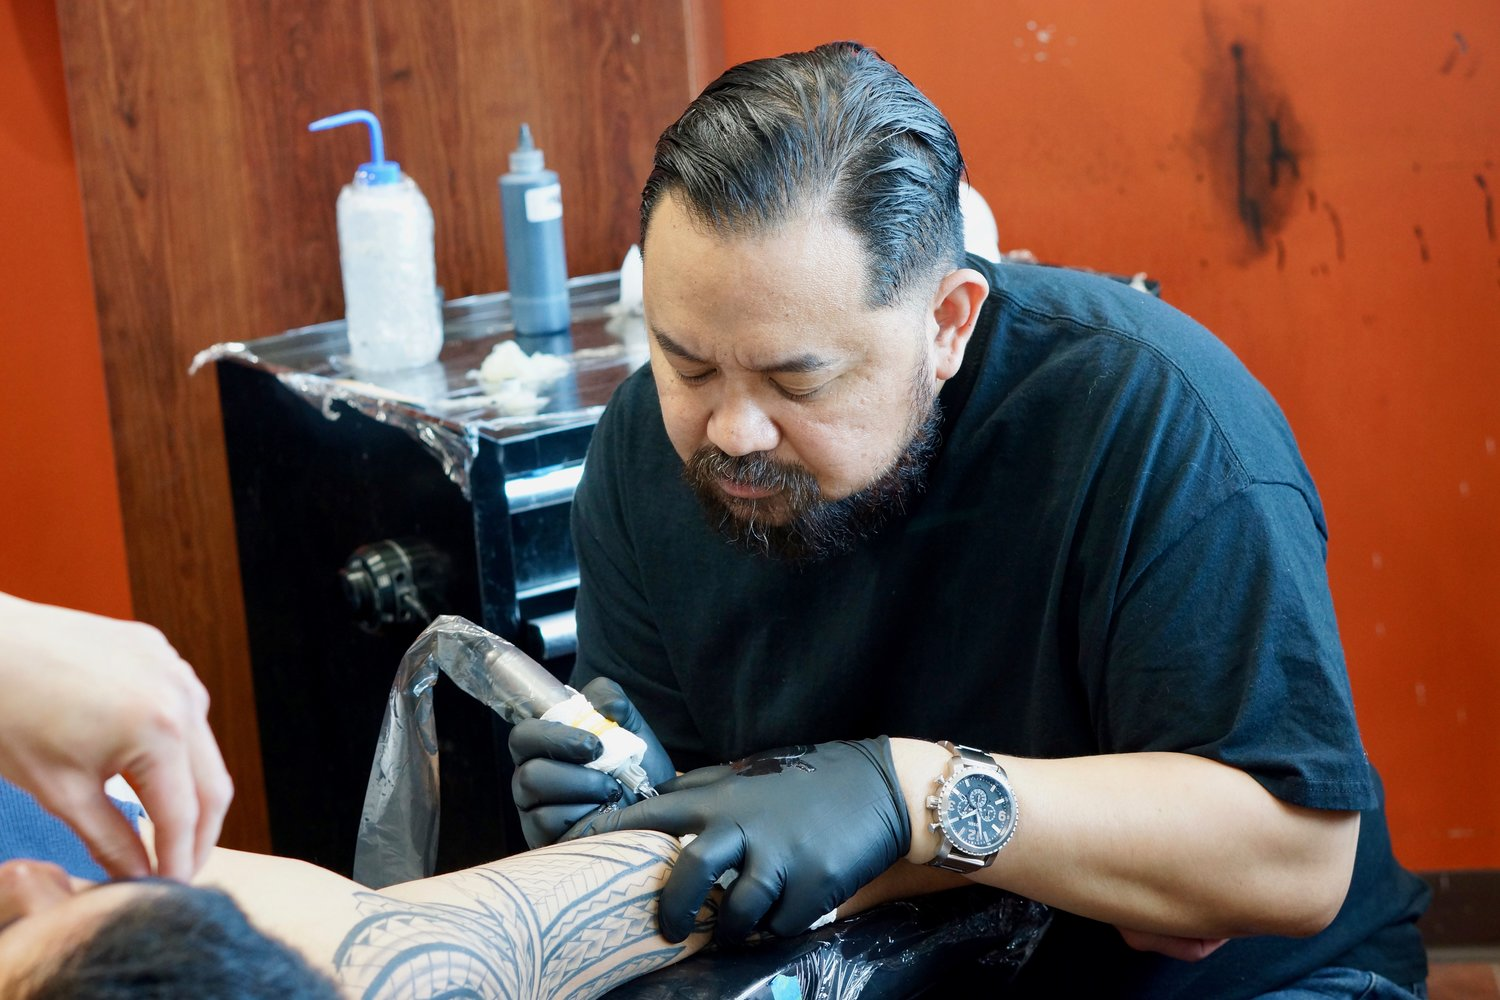 Robtatau specializes in tribal tattoos in Toronto. Find him on pick the ink. @robtatau